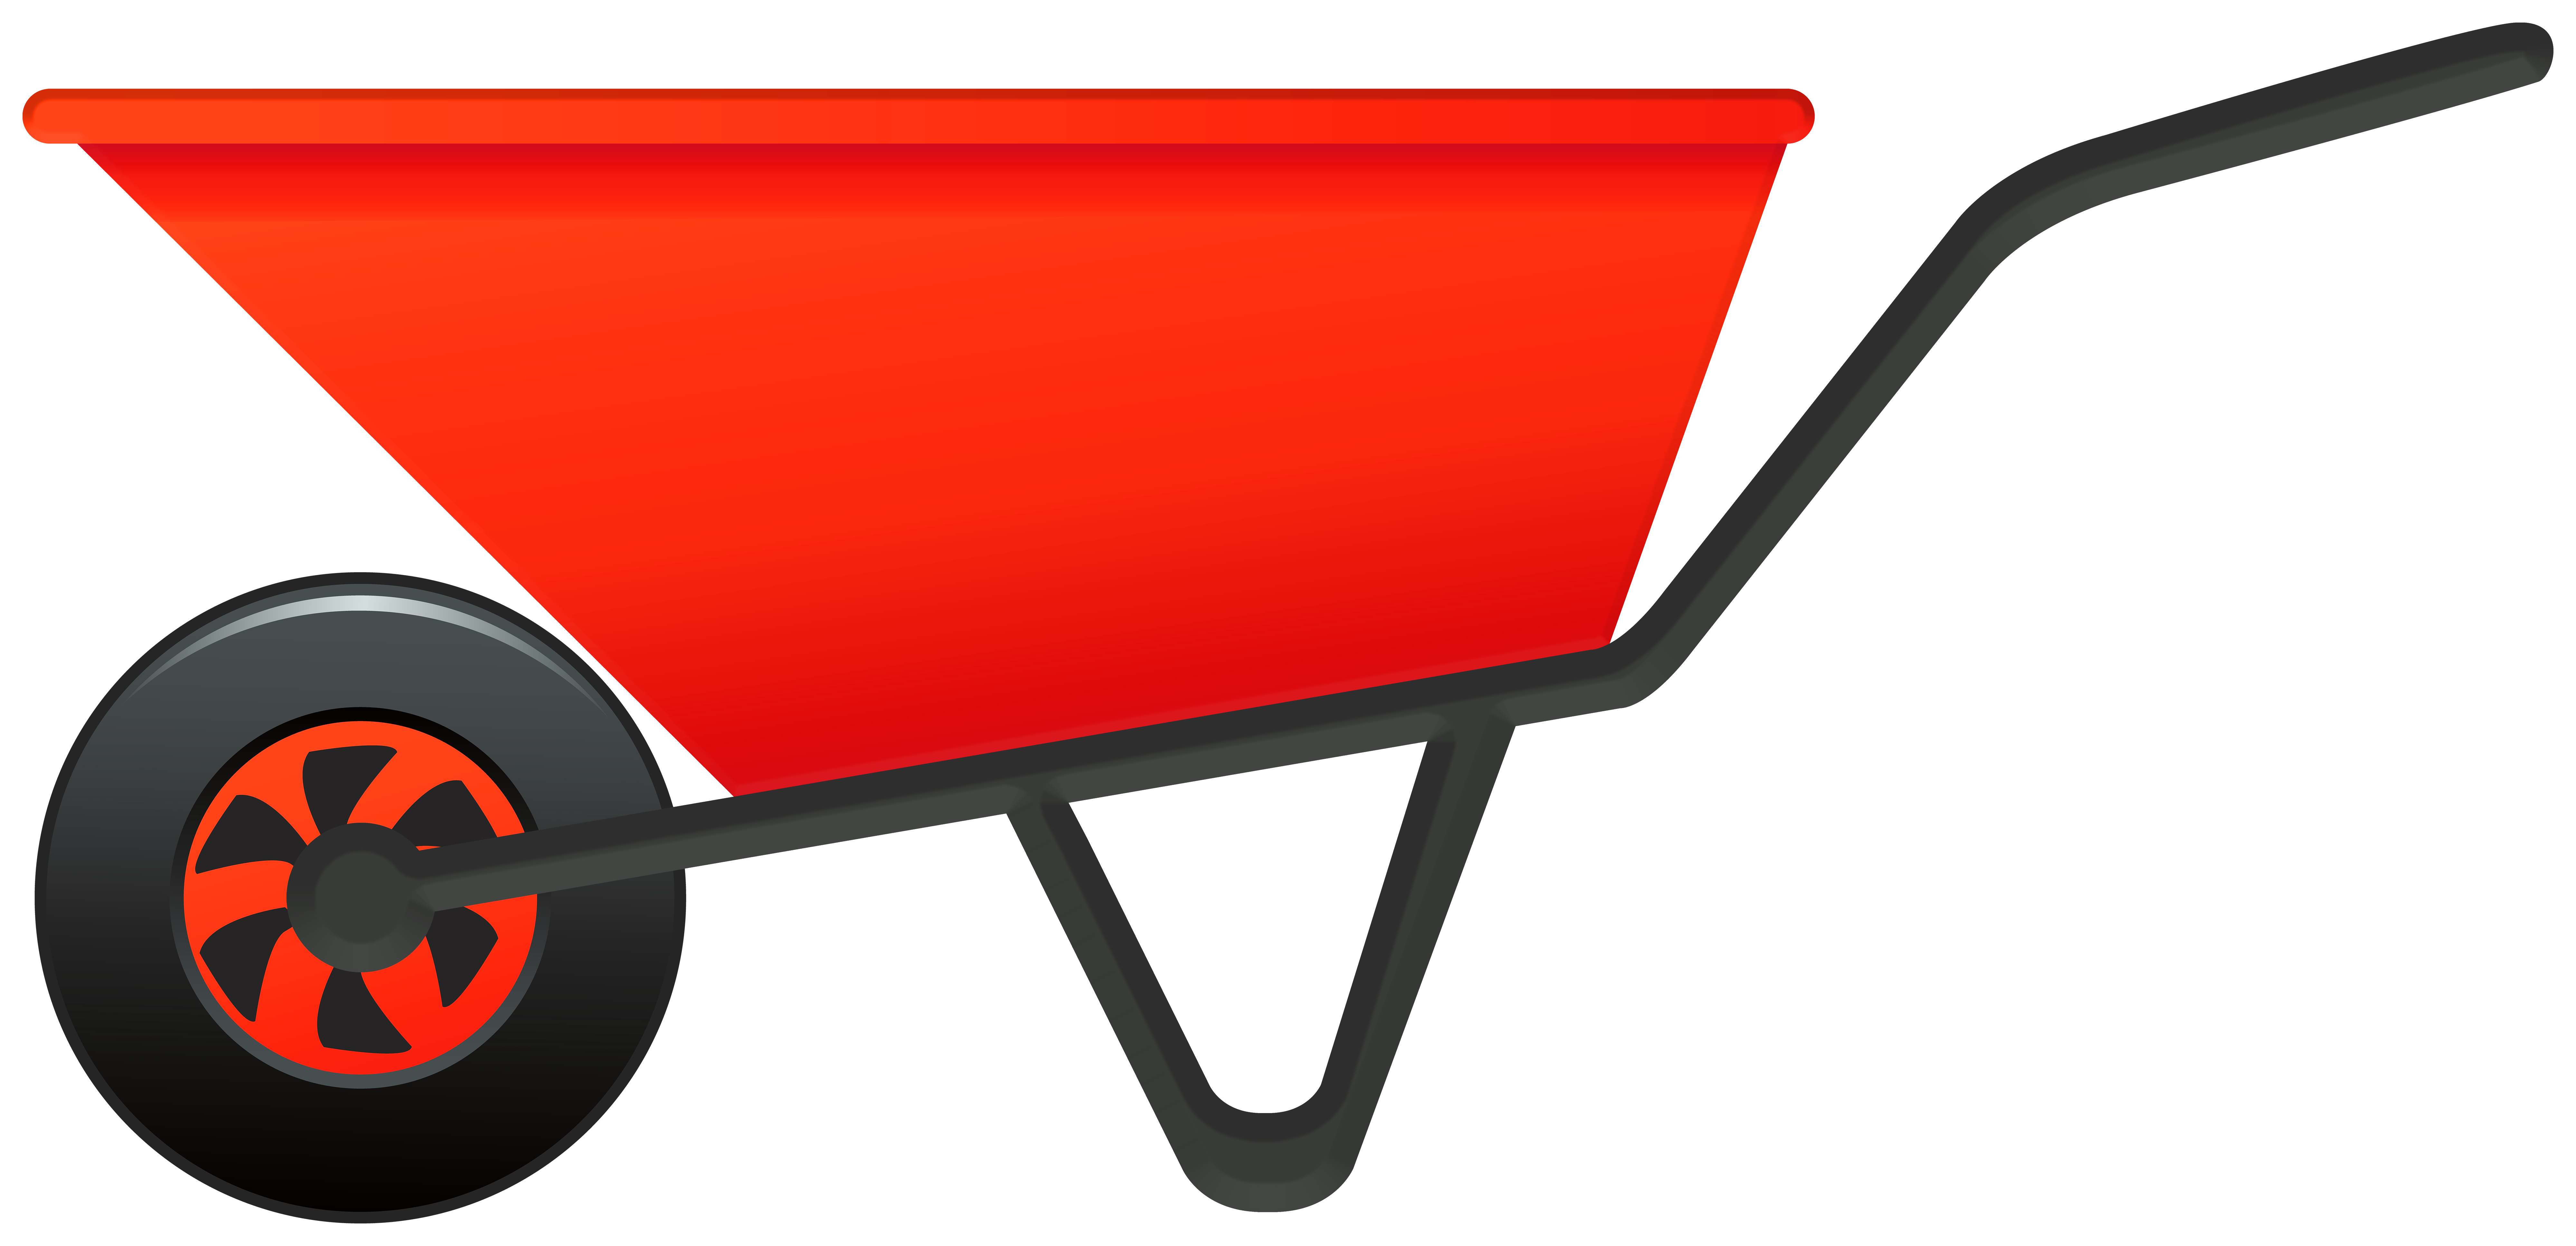 graphic freeuse download Wheelbarrow clipart. Red png gallery yopriceville.